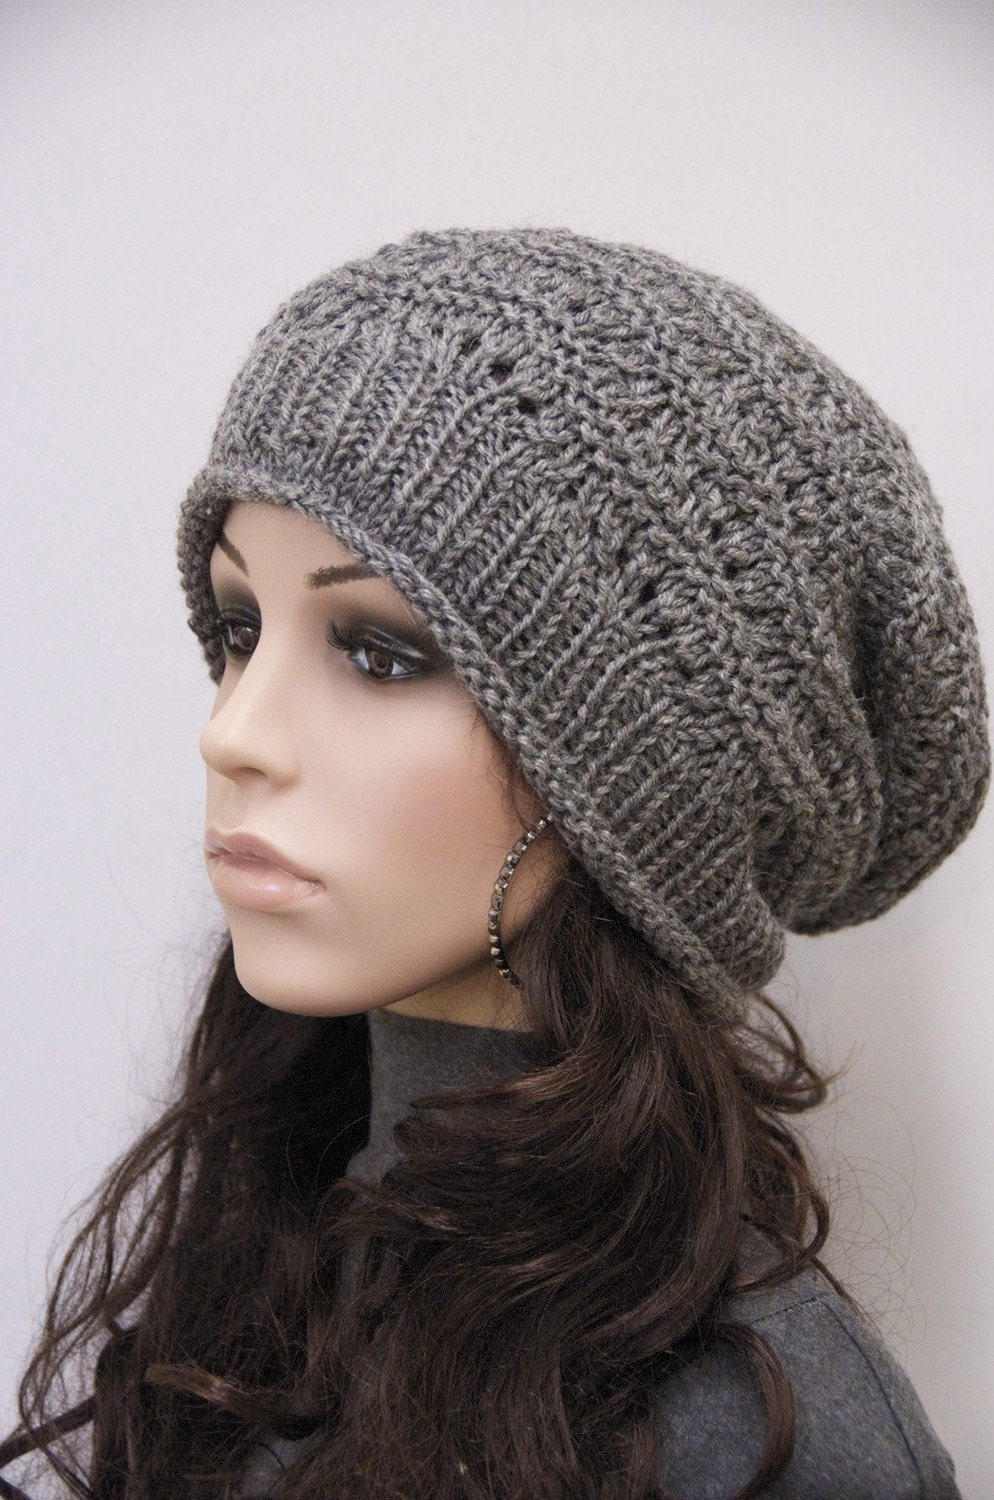 Knitting Pattern For Slouchy Hat : Hand Knit hat woman hat winter hat Charcoal Wool Hat dark grey